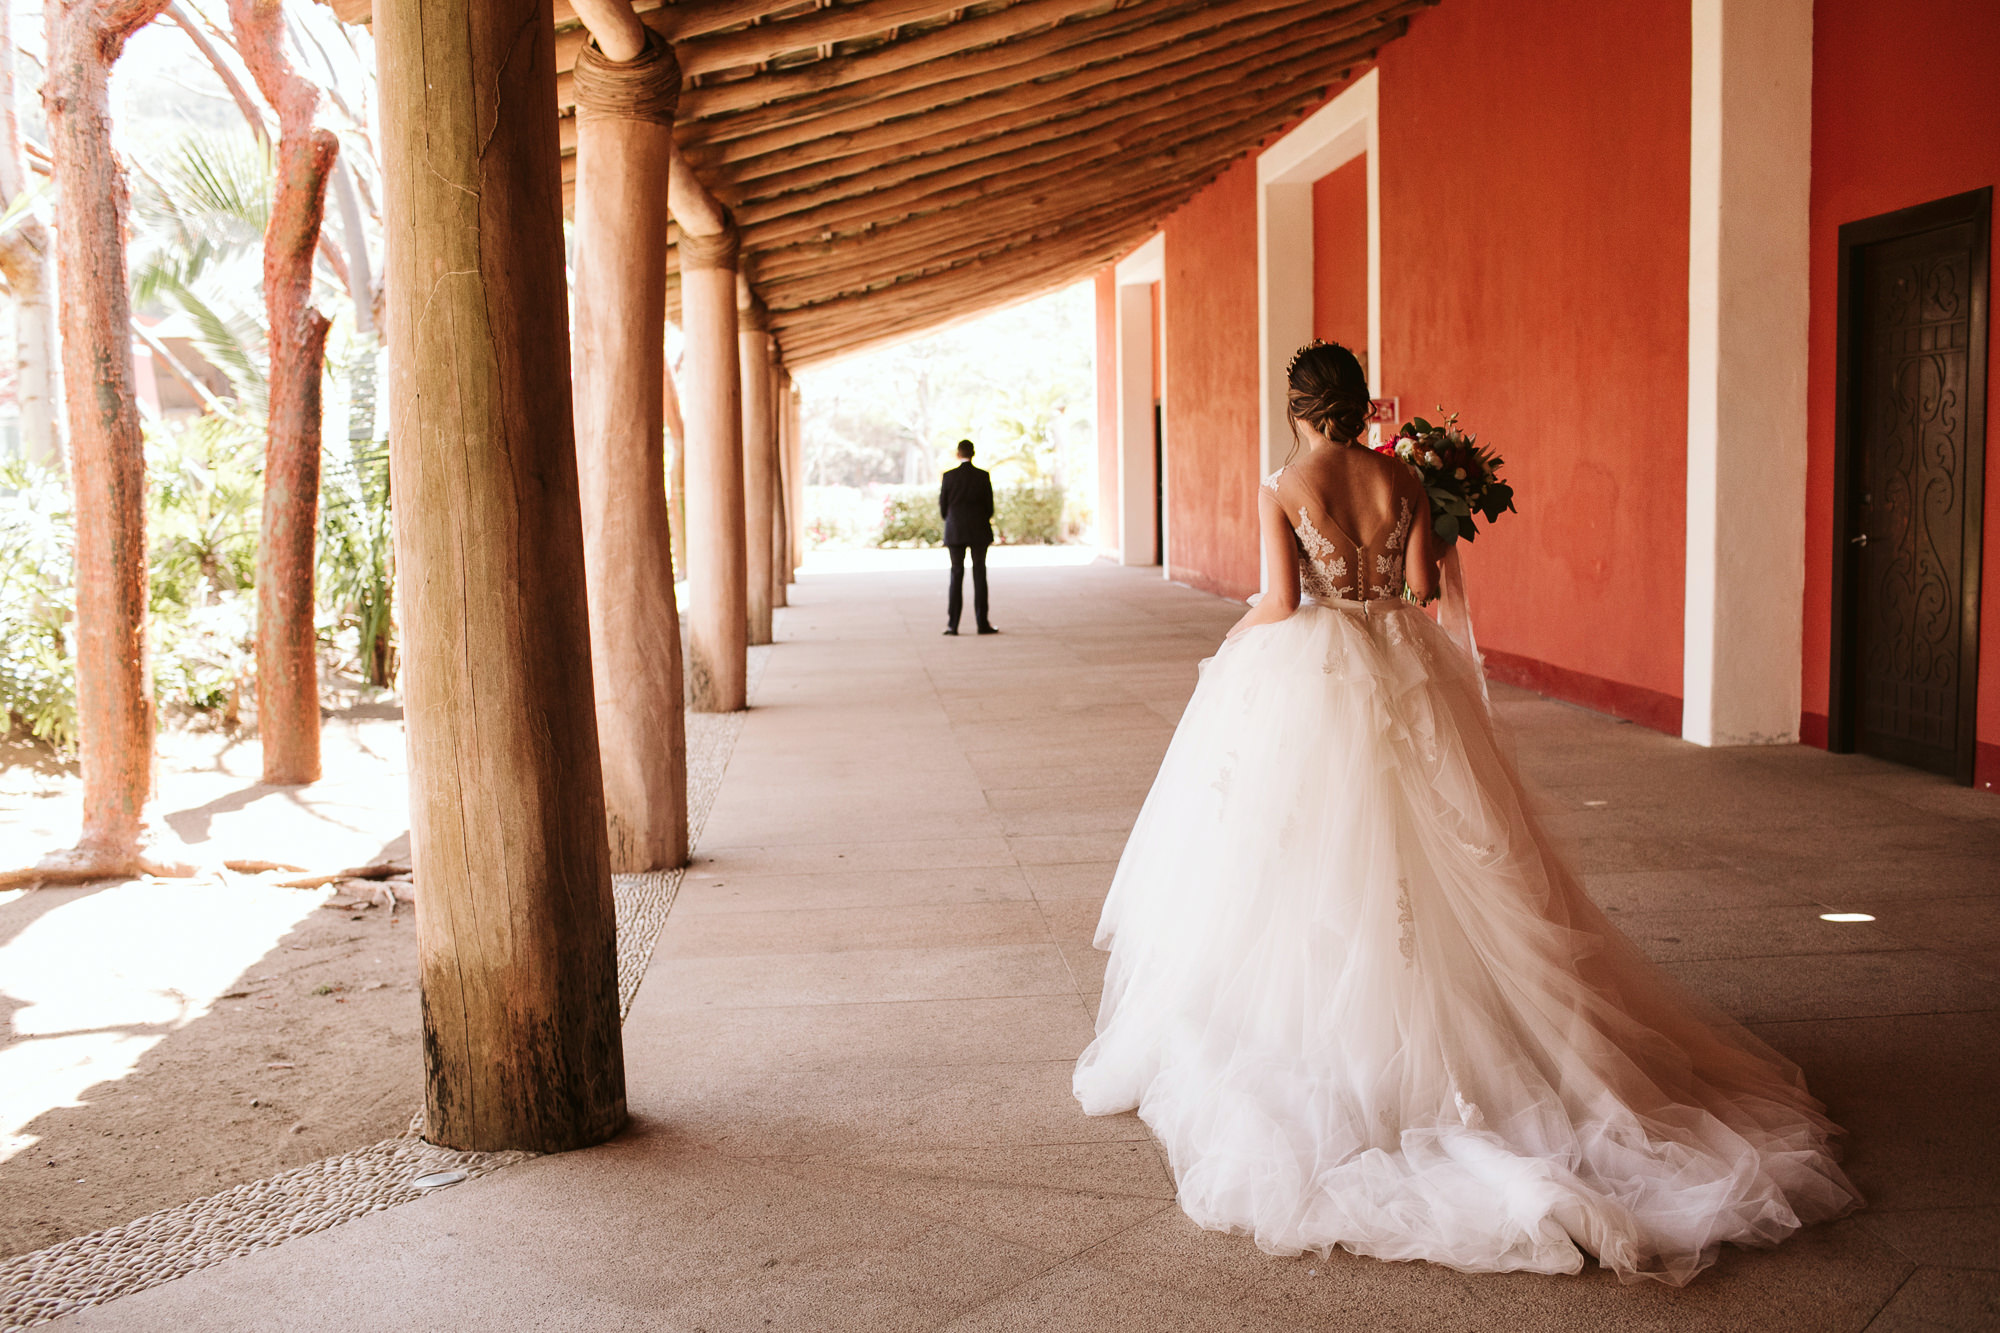 Sayulita-wedding-66.jpg